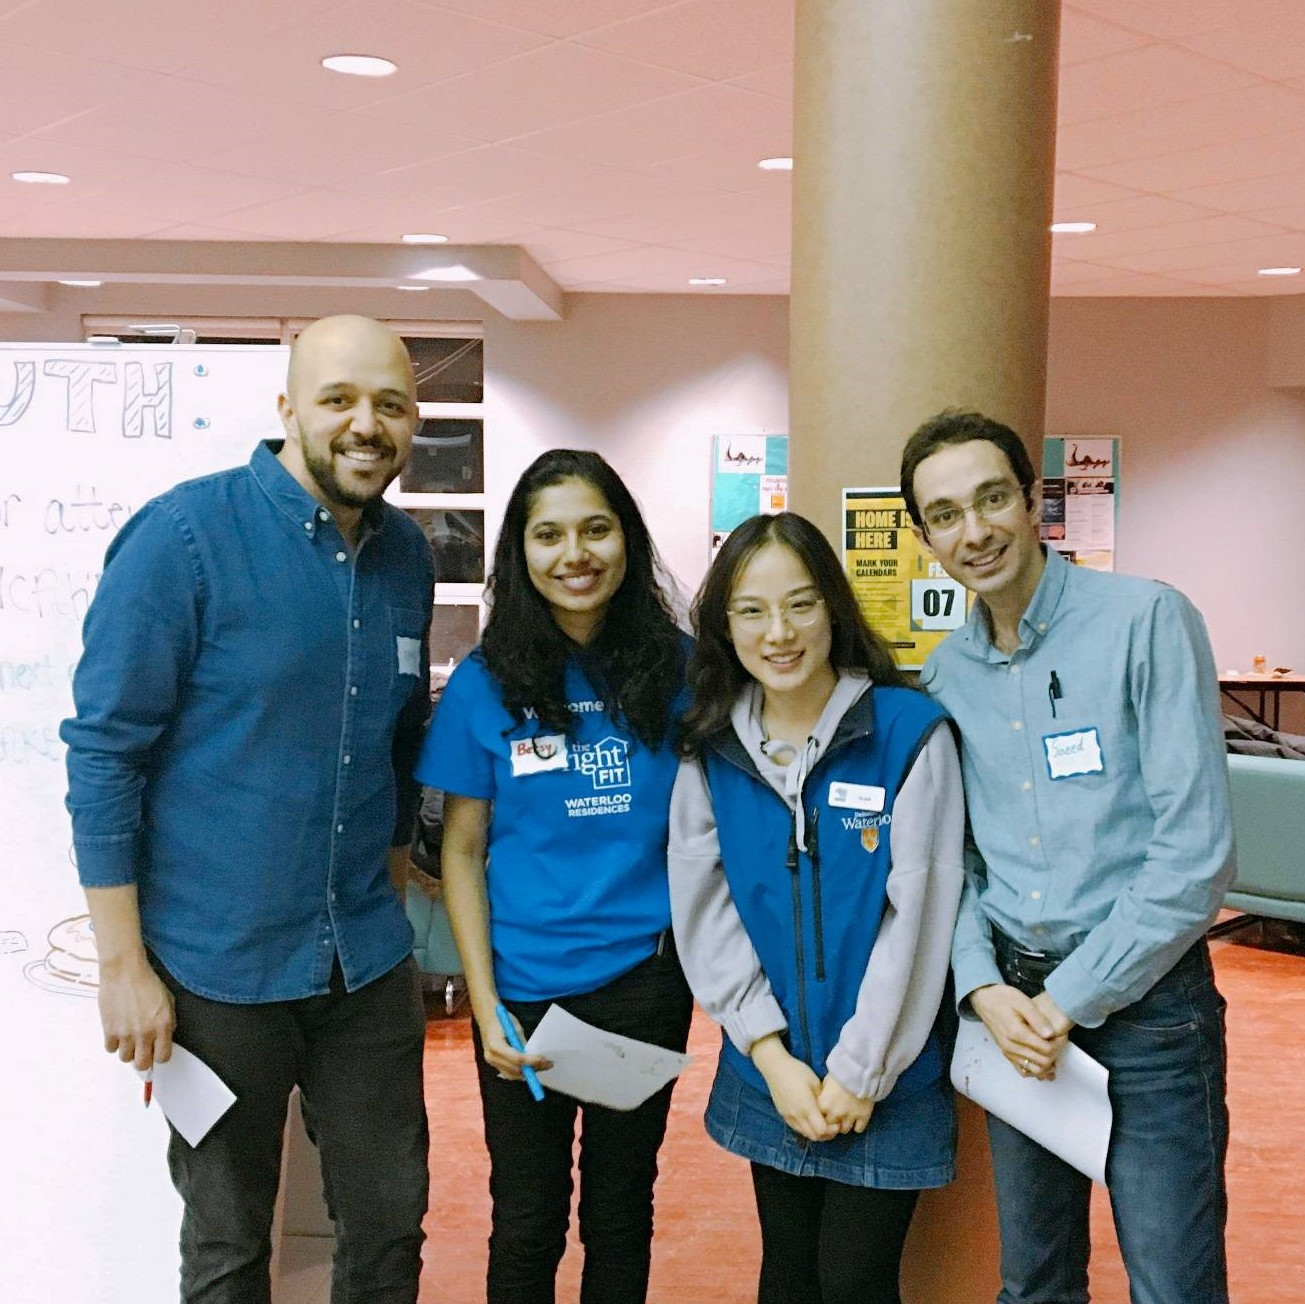 Betsy Mathew, second from left, with the Community Assistant team at the CLV Ping Pong/Foosball/Pool tournament. (Photo credit: Ekin Eray)